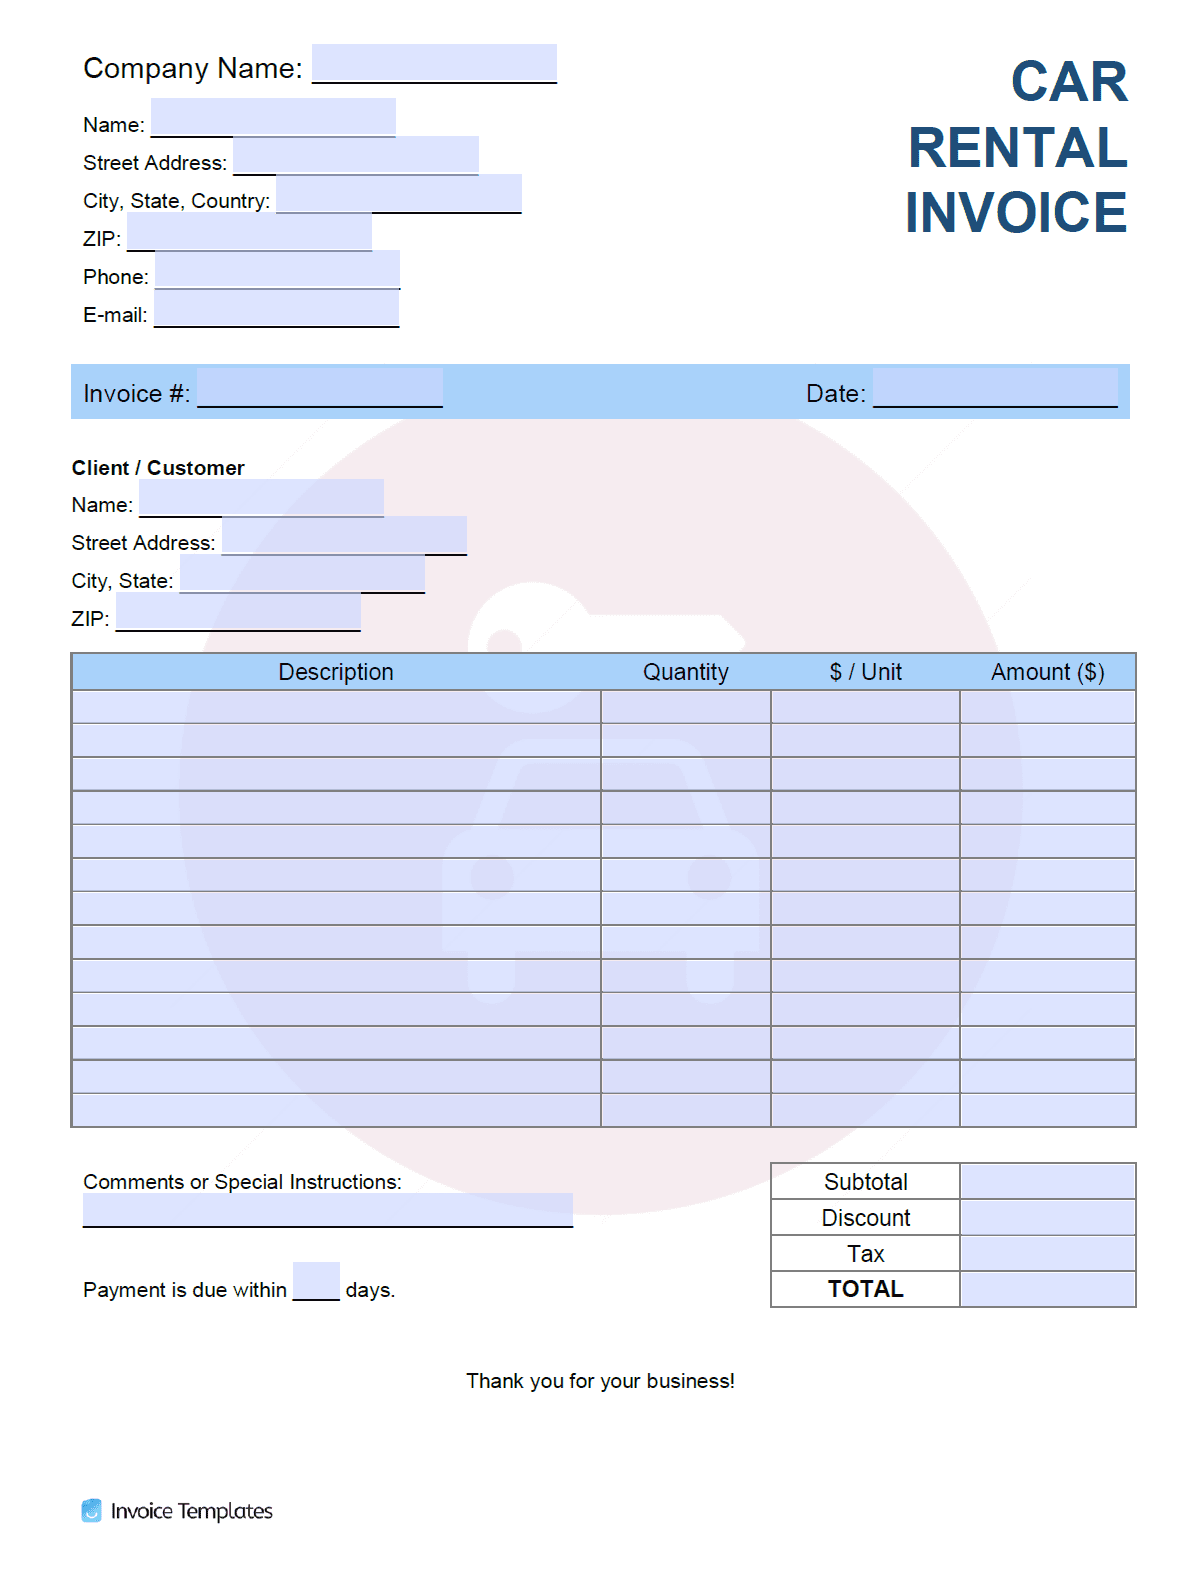 Free Car Rental Invoice Template Pdf Word Excel